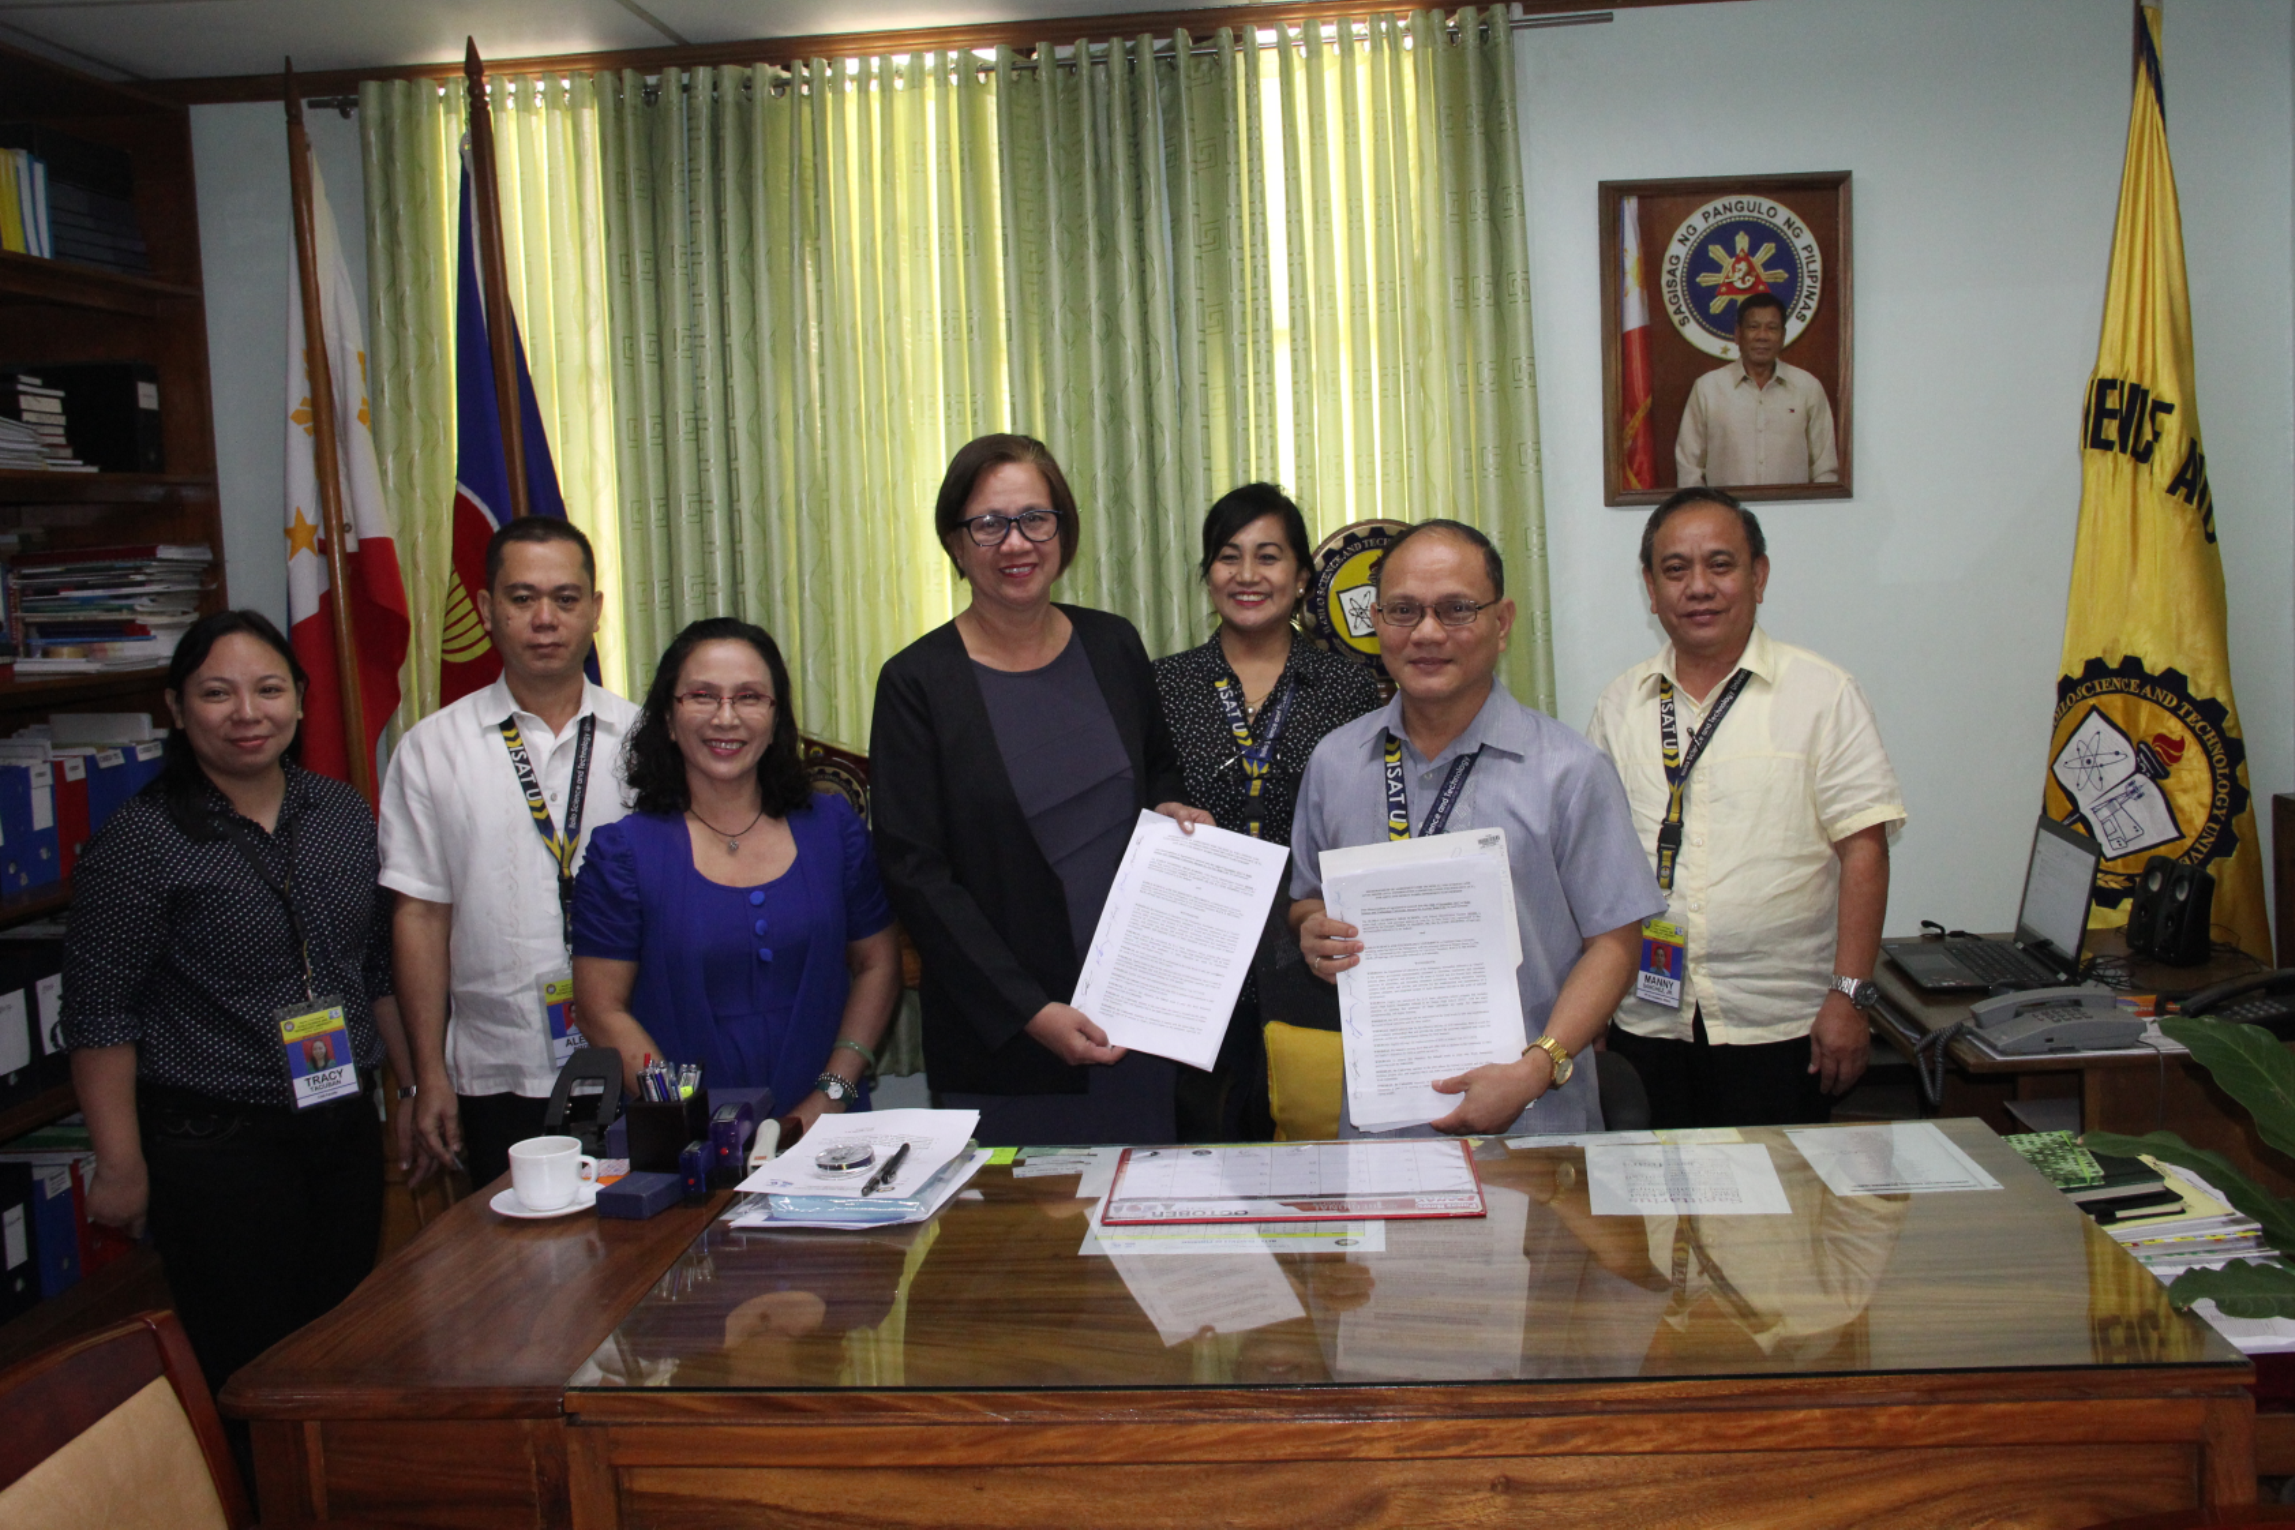 Dr. Raul F. Muyong and Dr. Maria Almen G. Gasalao, ASP-SHS, Iloilo National High School present the Memorandum of Agreement for study immersion of Iloilo National High School students at ISAT U Computer Department. Also in photo are (from left) Dr. Tracy Tacuban, Head, Computer Dept. ; Dr. Alejo P. Biton, CAS Dean; Dr. Evelyn M. Sorolla, INHS Focal Person/TVL Coordinator; Dr. Nehema K. Misola, VPEA and  Dr. Manuel A. Sanchez, Jr., VPAA.